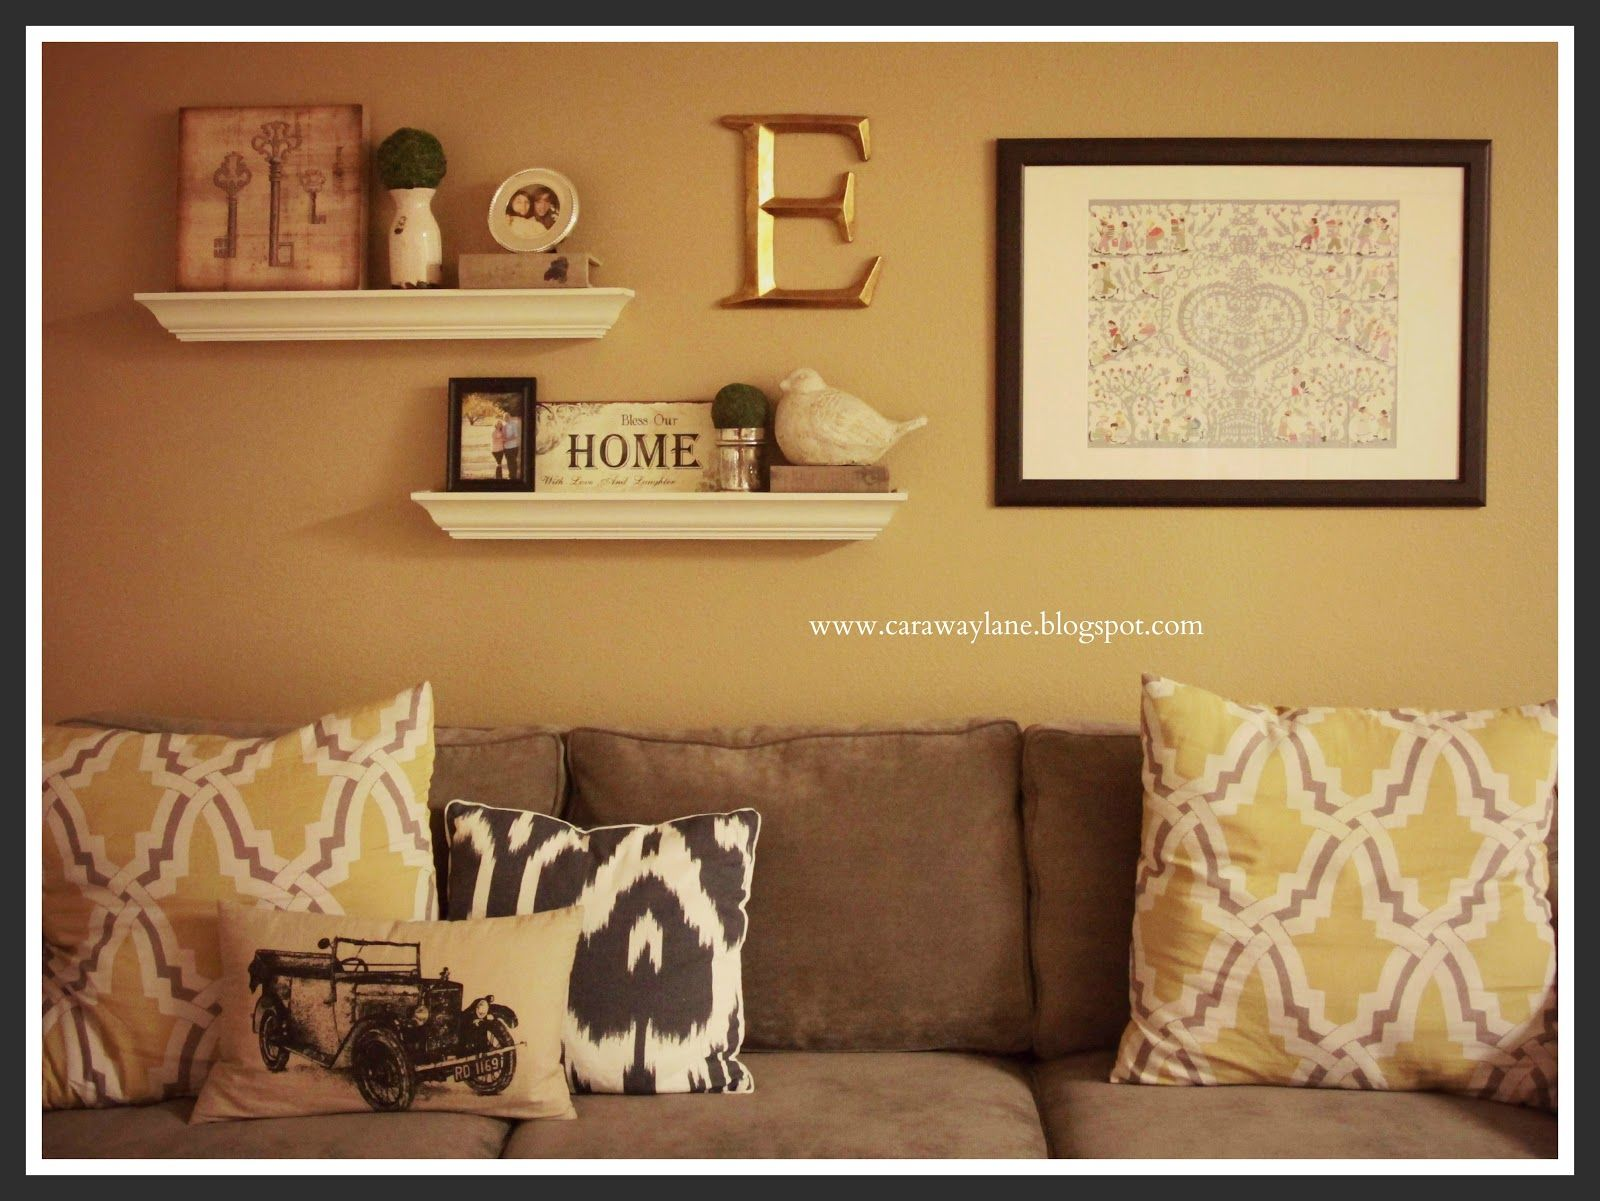 Wall Decoration In Rooms : Decorate over a sofa above the couch wall decor future